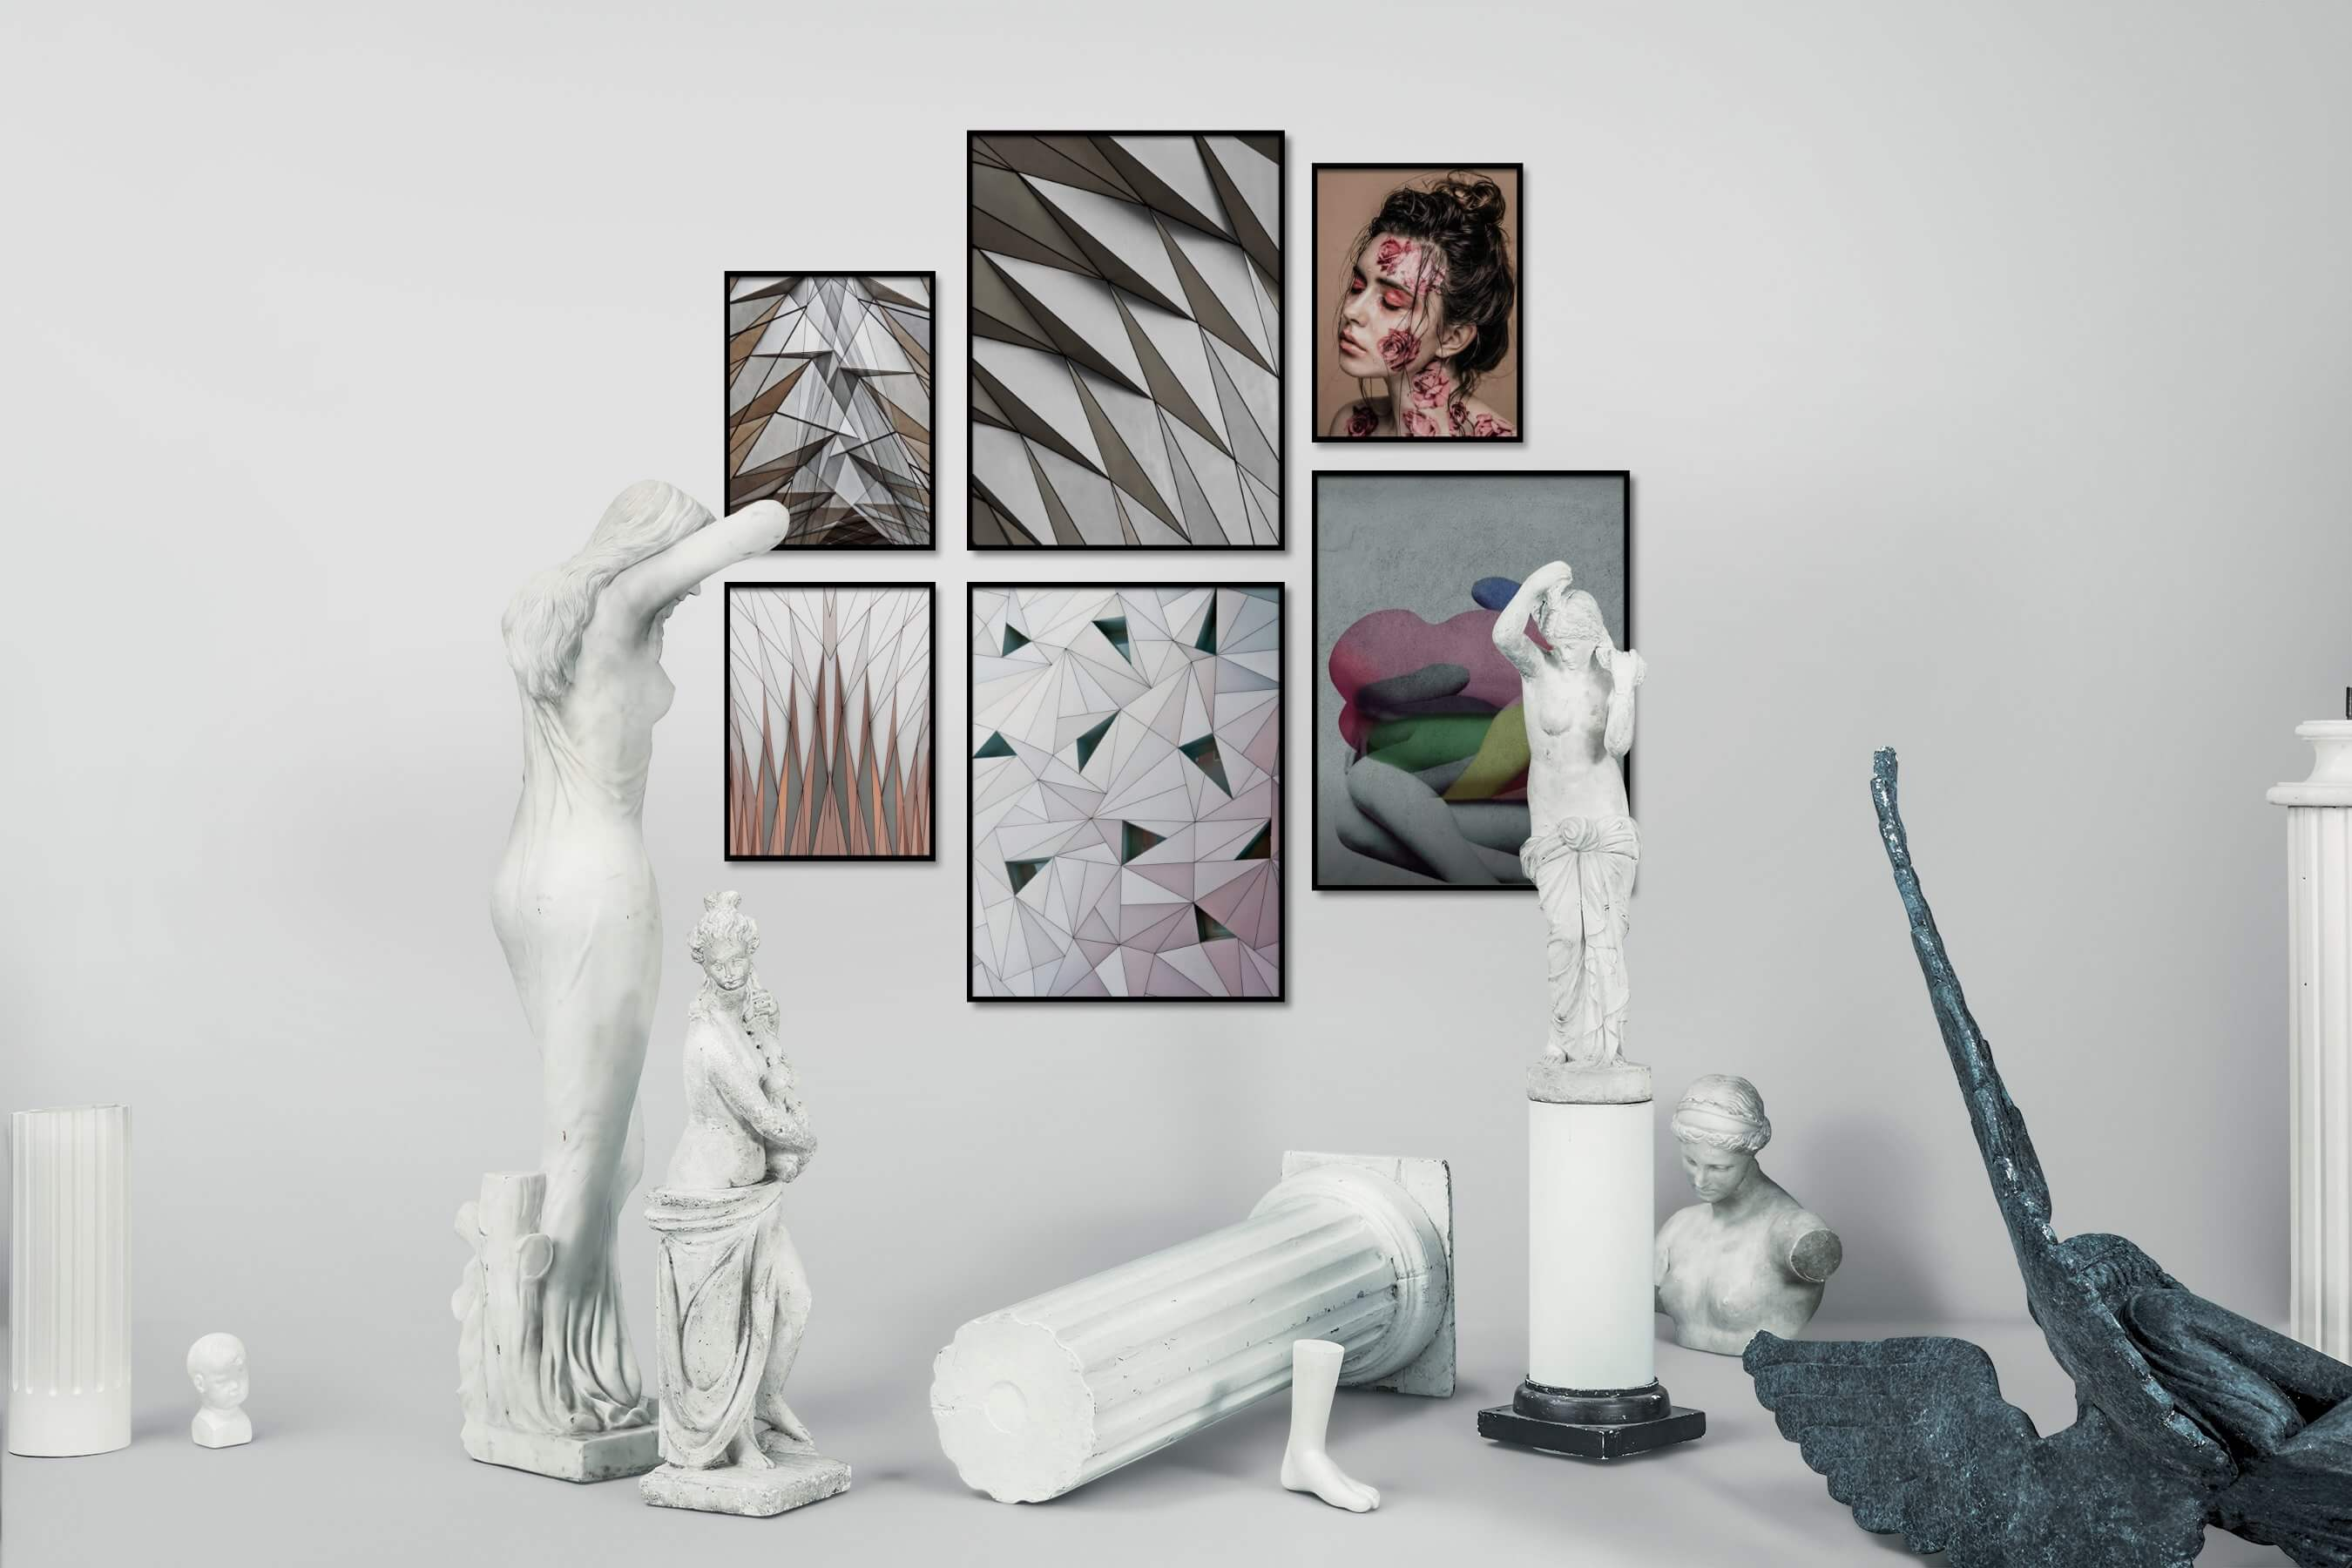 Gallery wall idea with six framed pictures arranged on a wall depicting For the Maximalist, For the Moderate, Fashion & Beauty, and Artsy